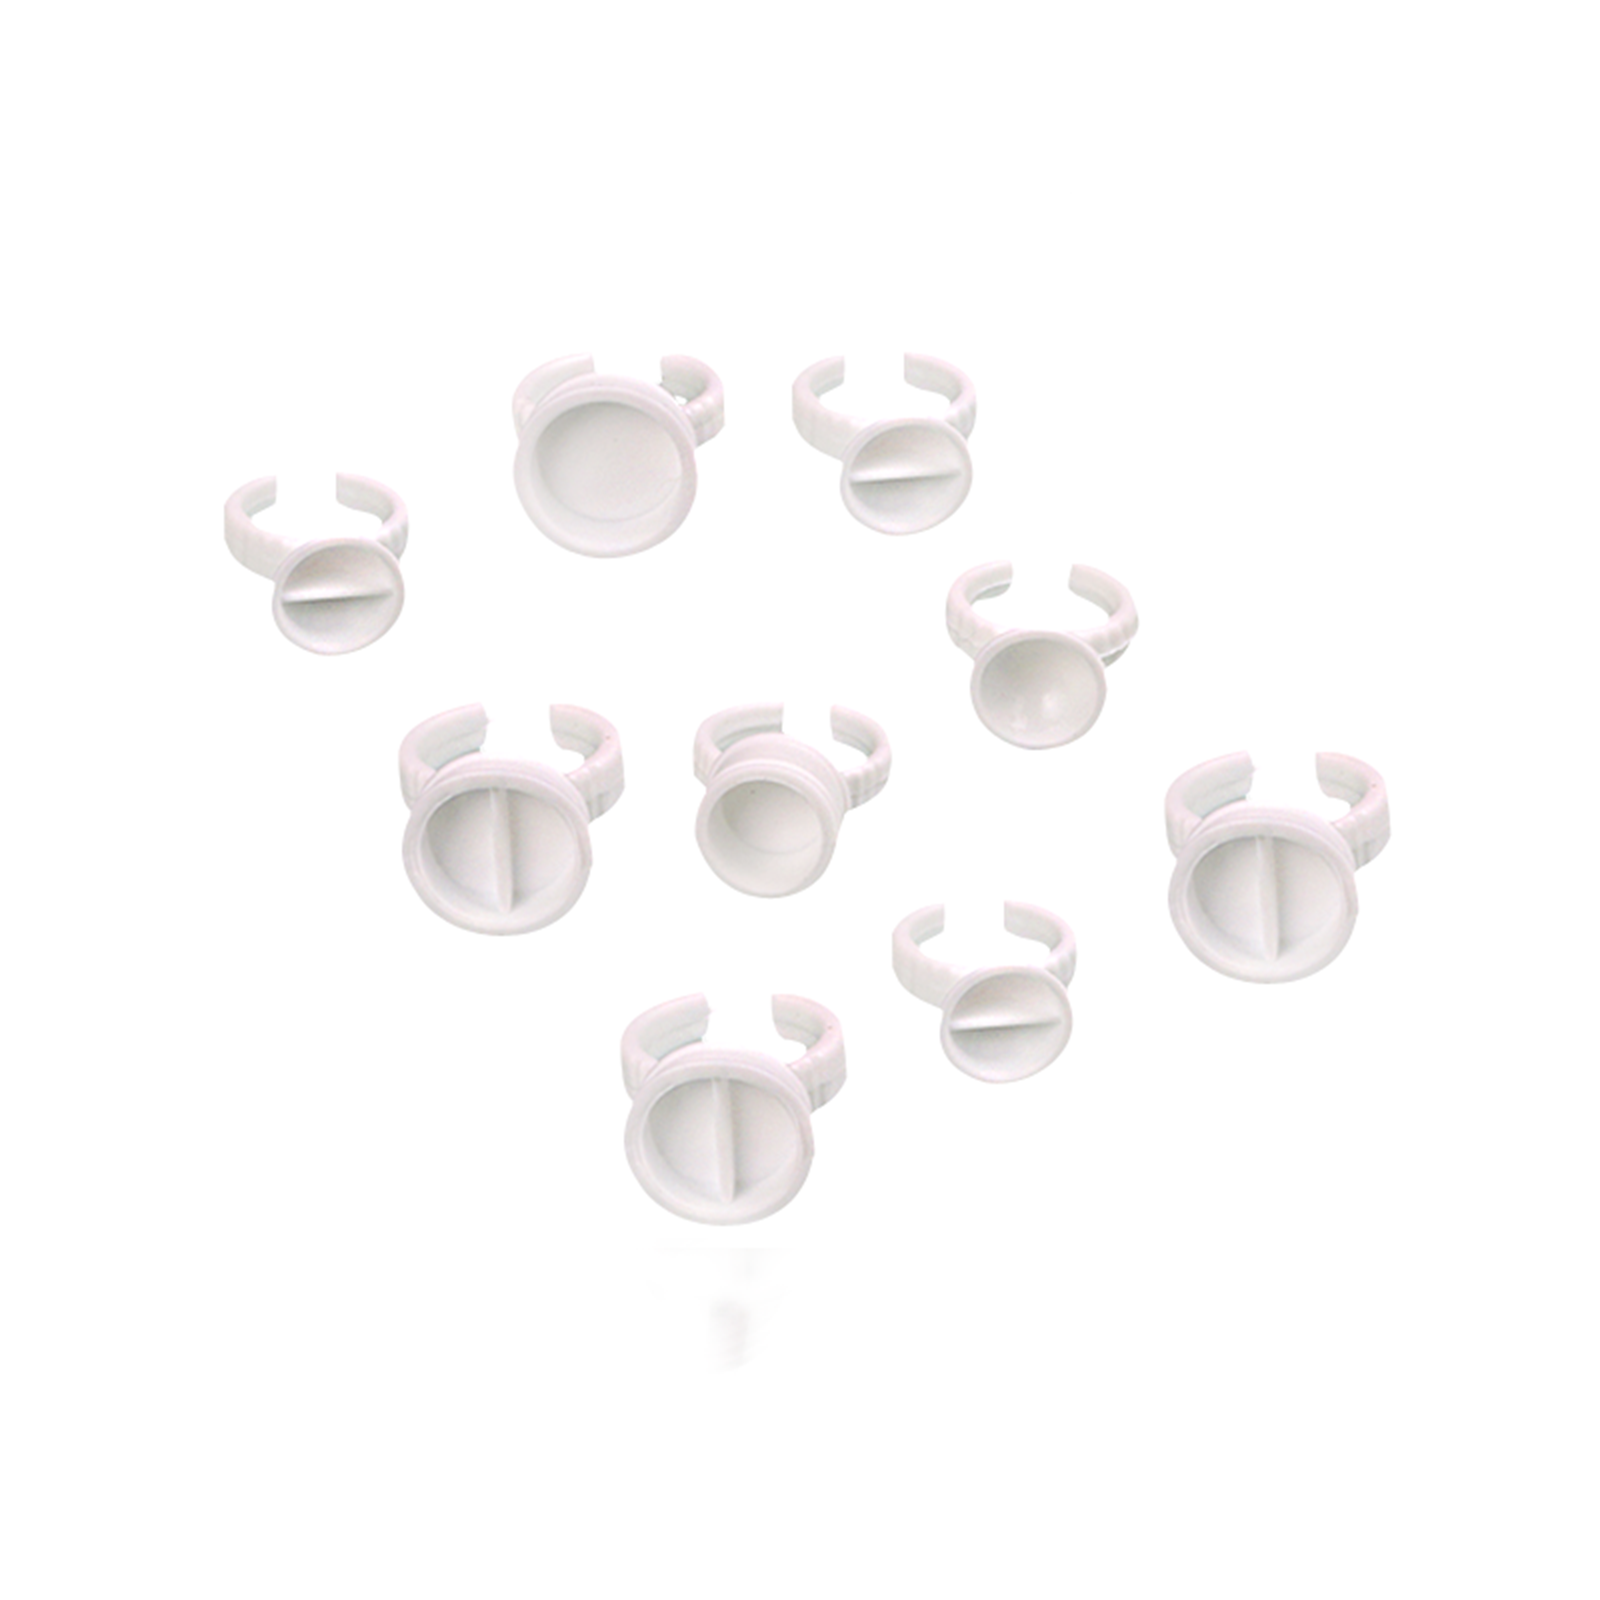 BoLin-Microblading Tool | Plastic Ink Ring Cups For Tattoo Bl-00092 - Bolin Cosmetic-4